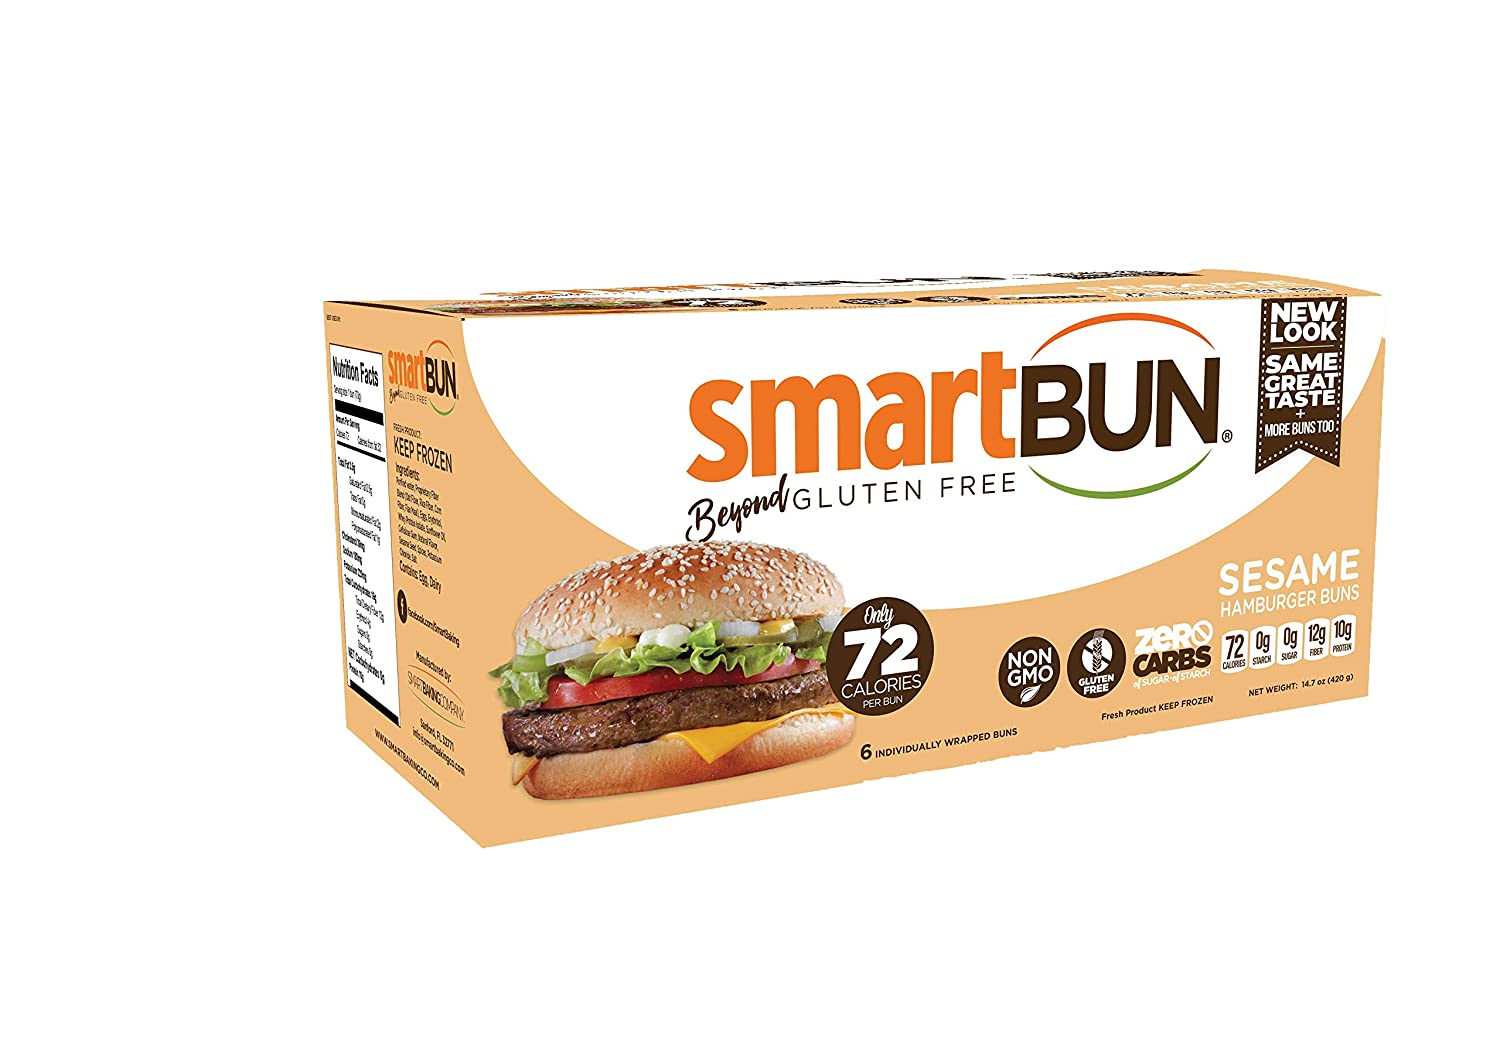 Gluten Free, ZERO CARB of sugar of starch, sesame, Hamburger Buns- 24 pack